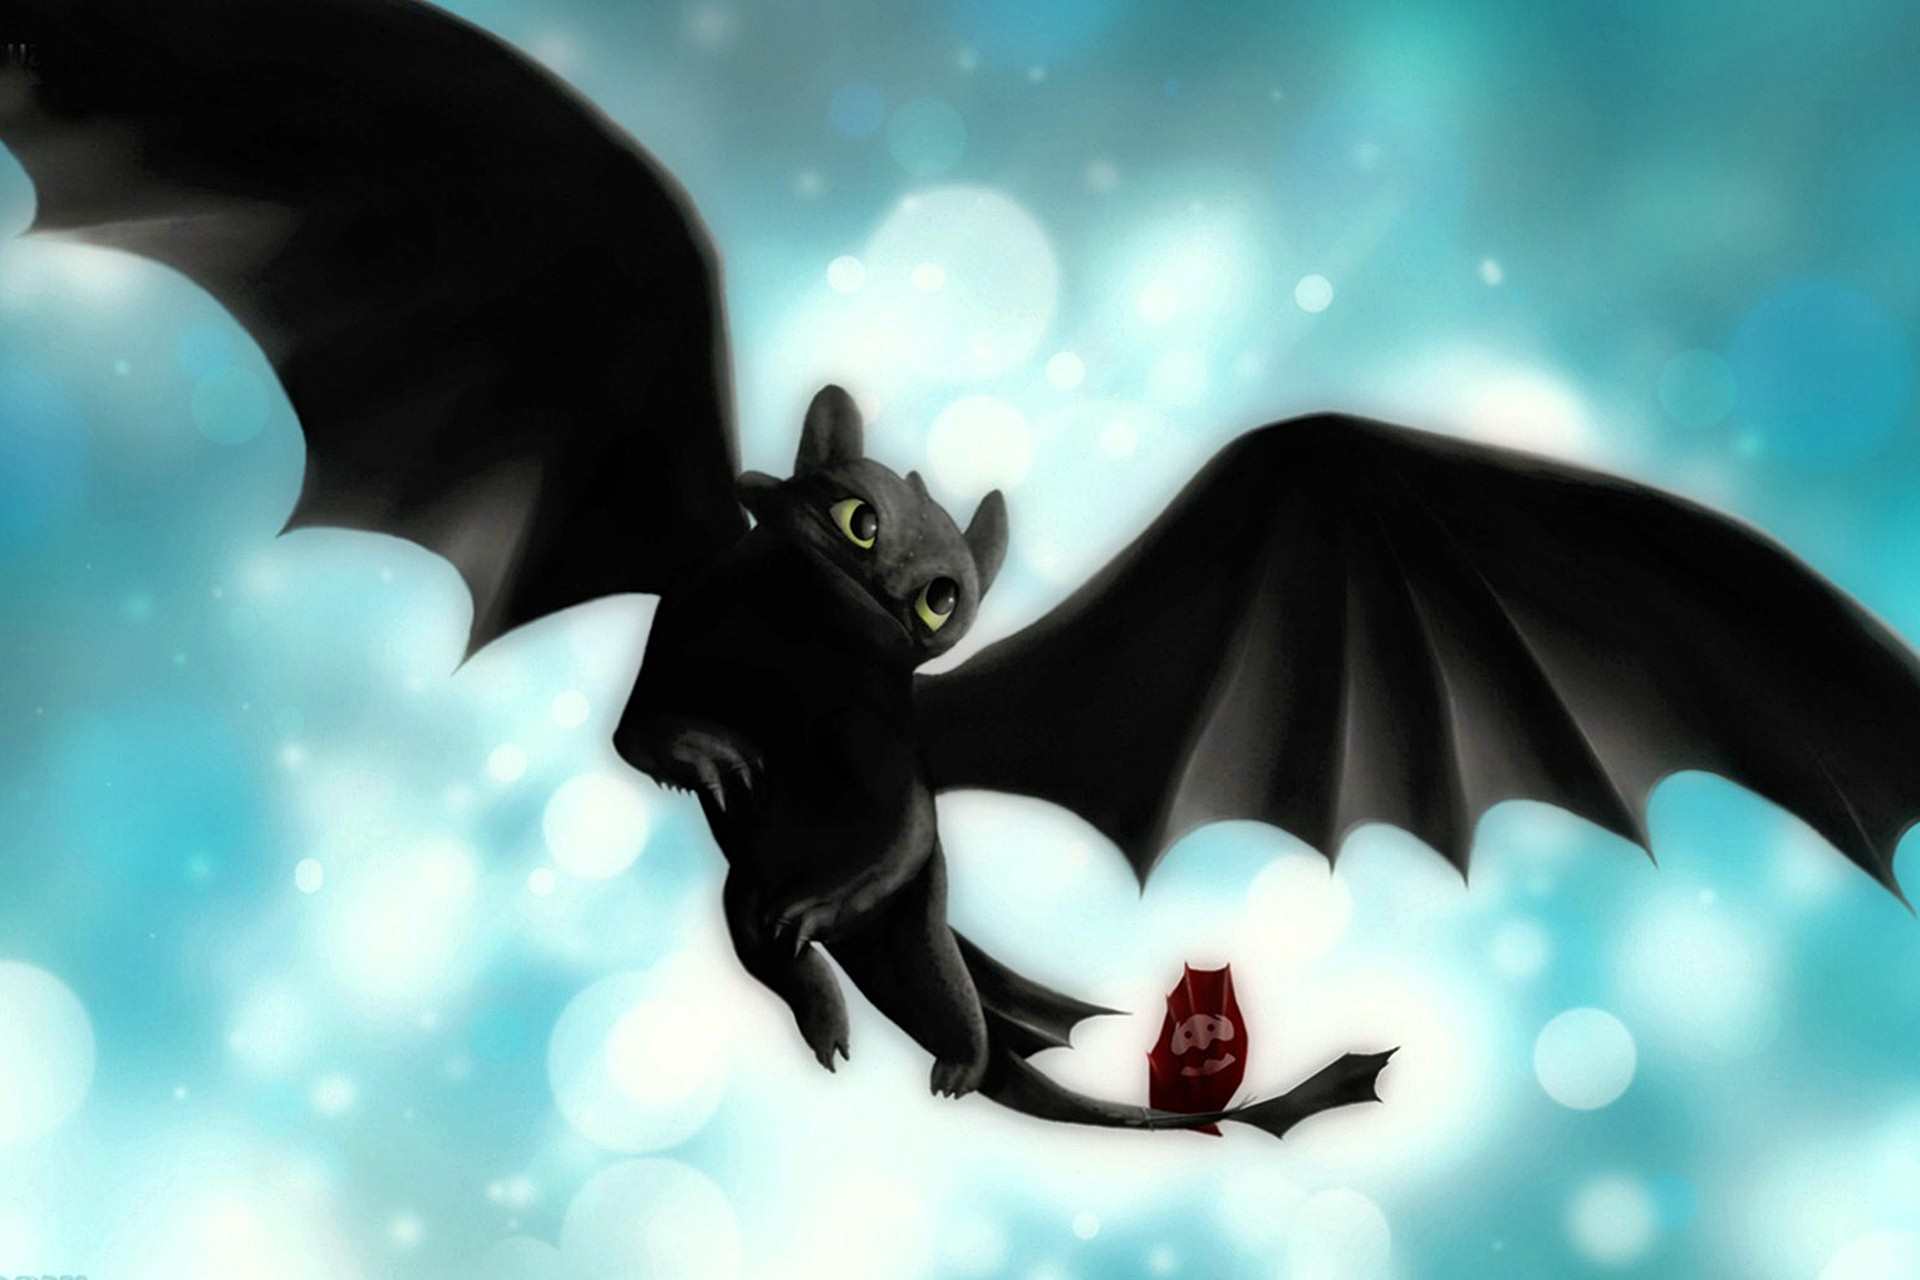 How To Train Your Dragon Wallpaper Toothless 18 Desktop 1920x1280